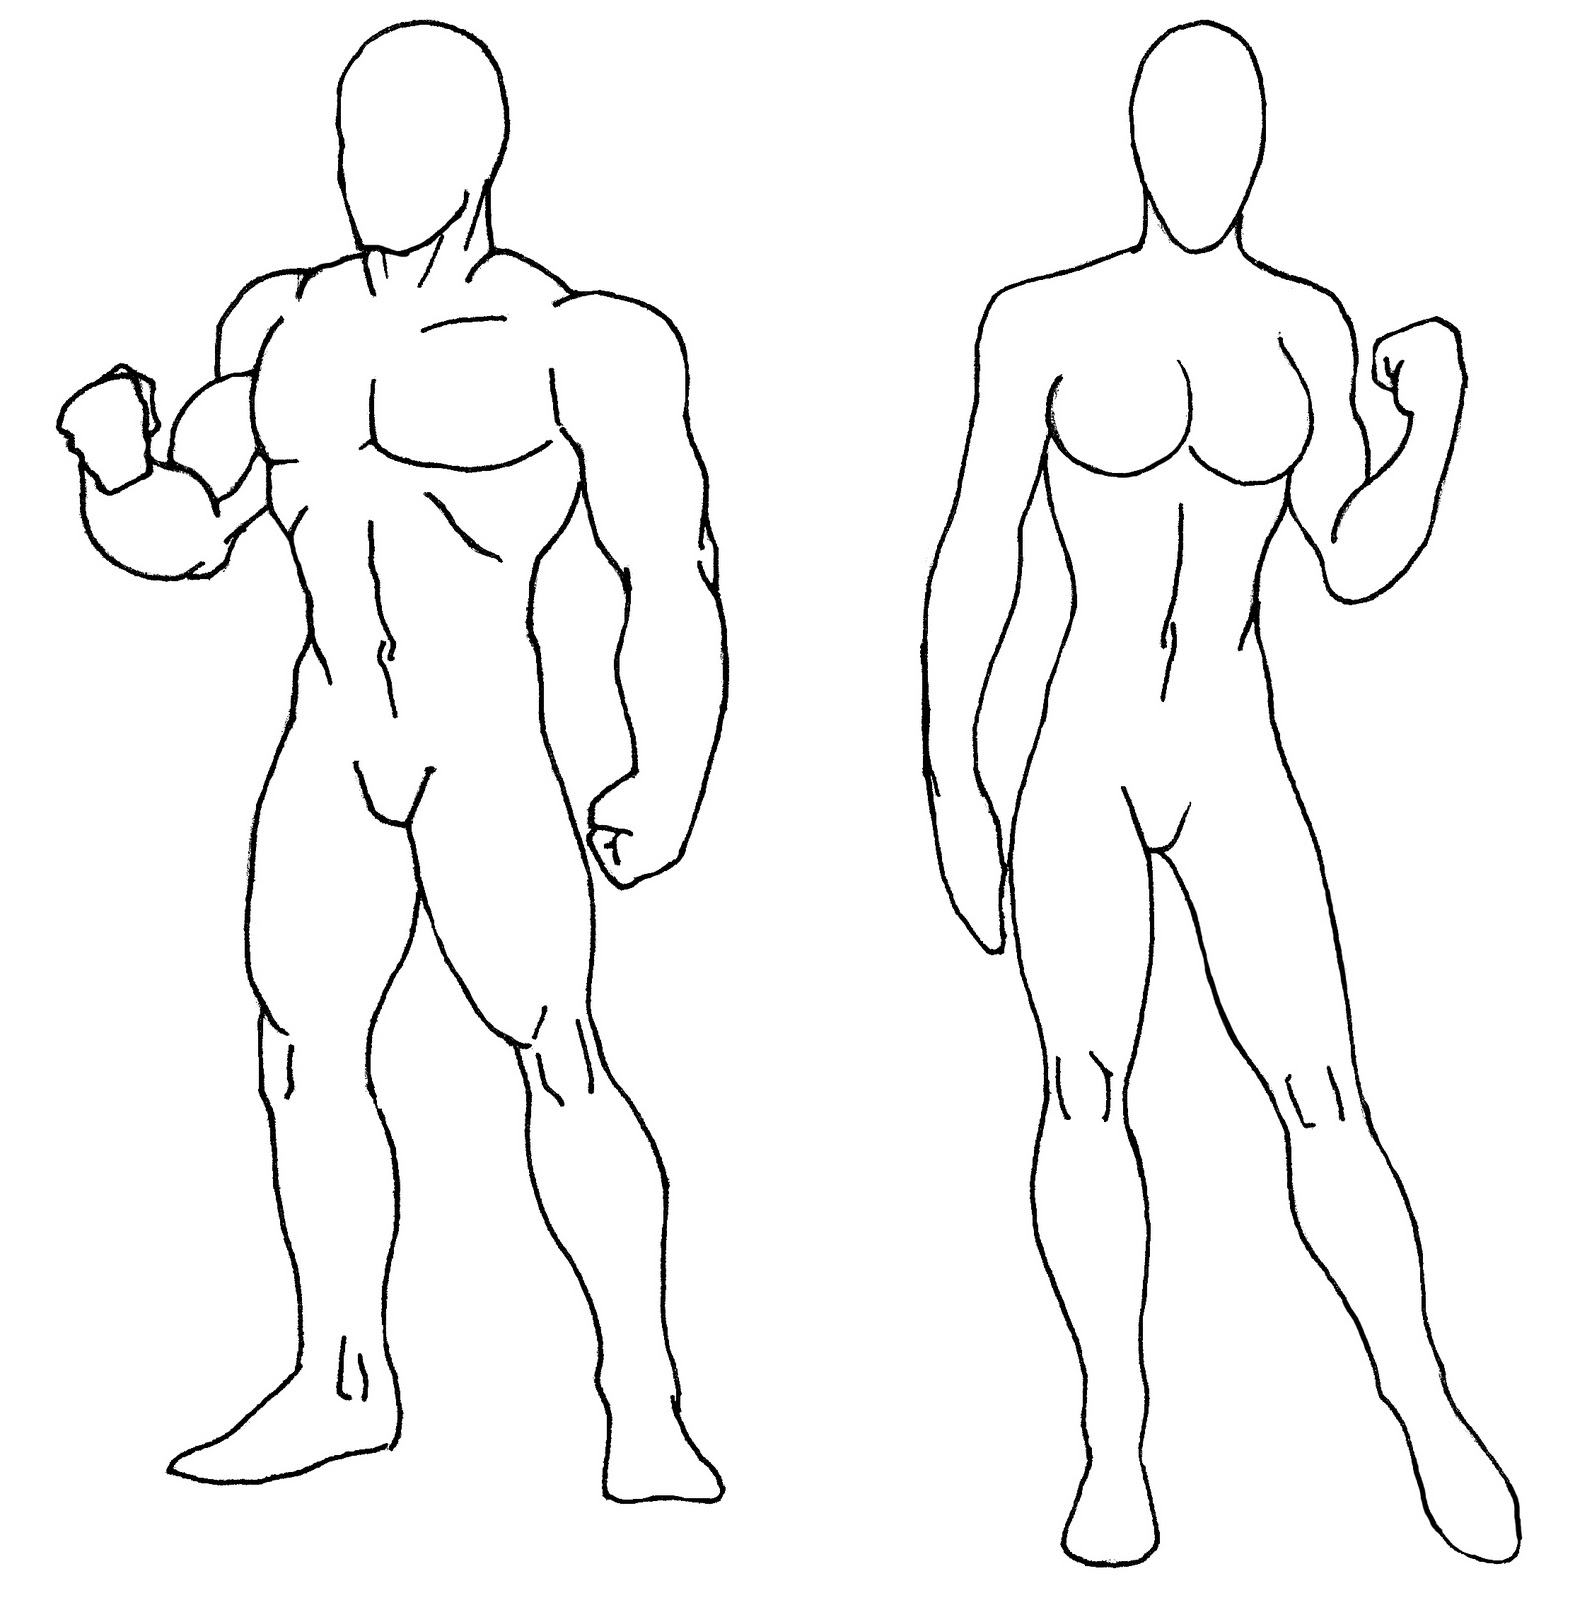 1575x1600 Body Drawing Templates Fashion Body Drawing Templates